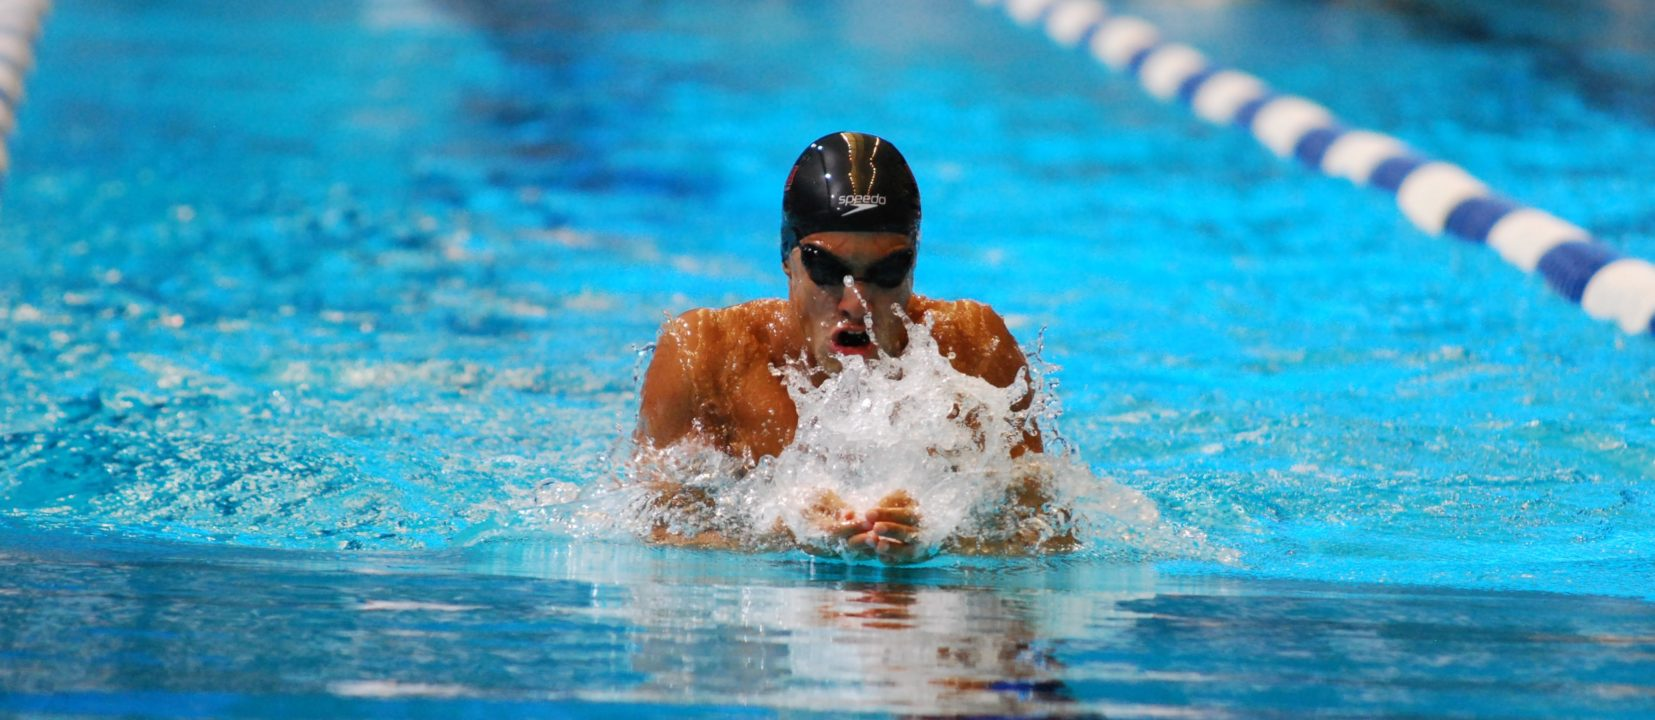 California's Grand Challenge wraps up with big swims from Johnson, Neal, Coffman and Quintero